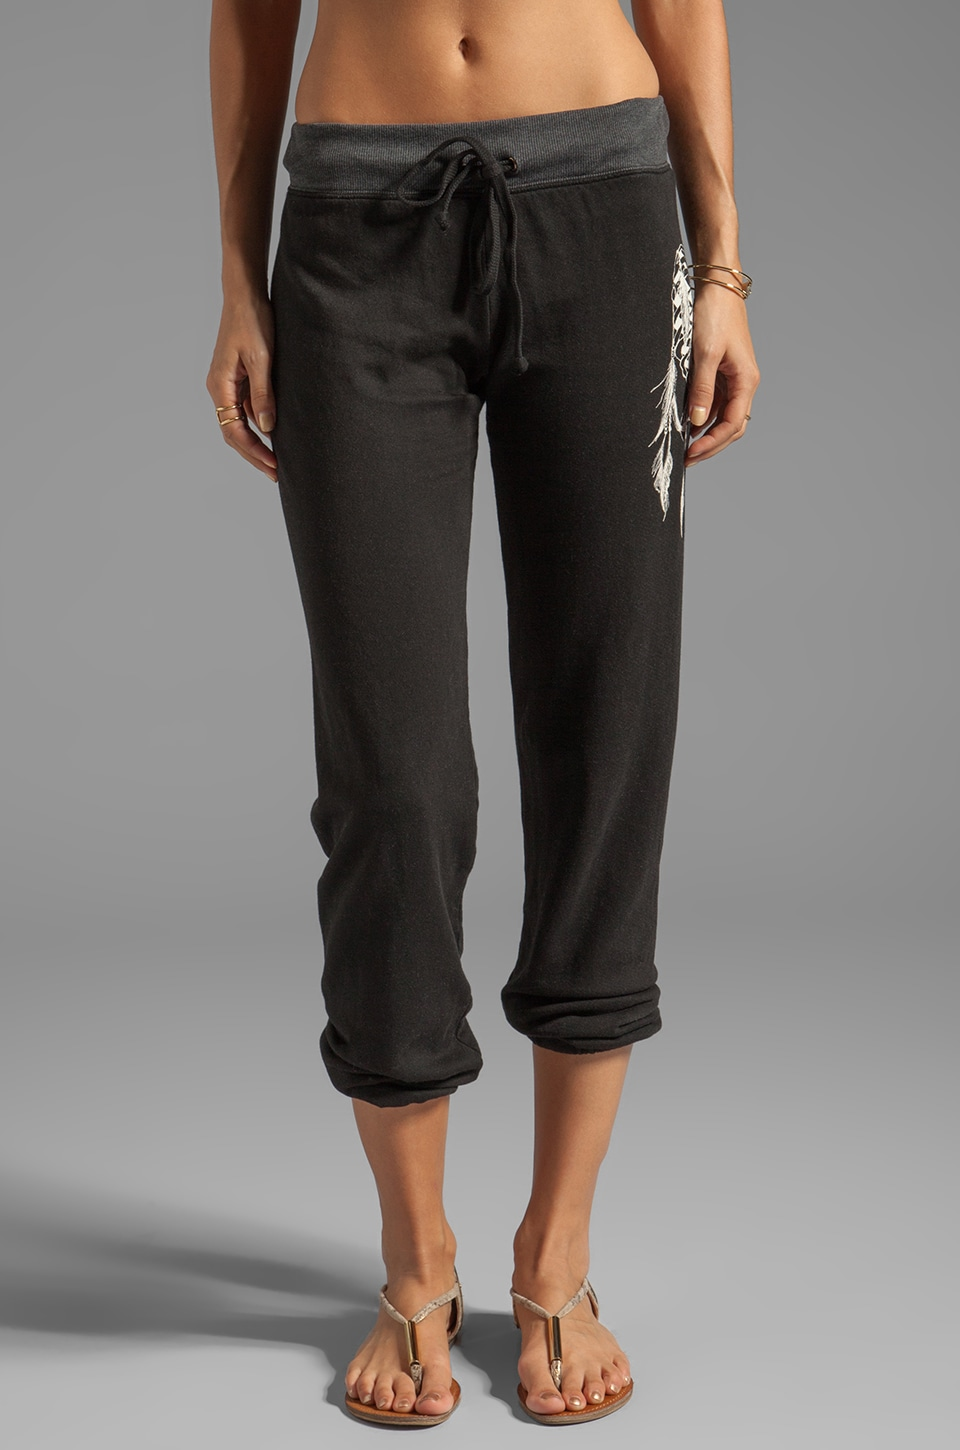 291 Heart of Bone Baggy Sweatpant in Black